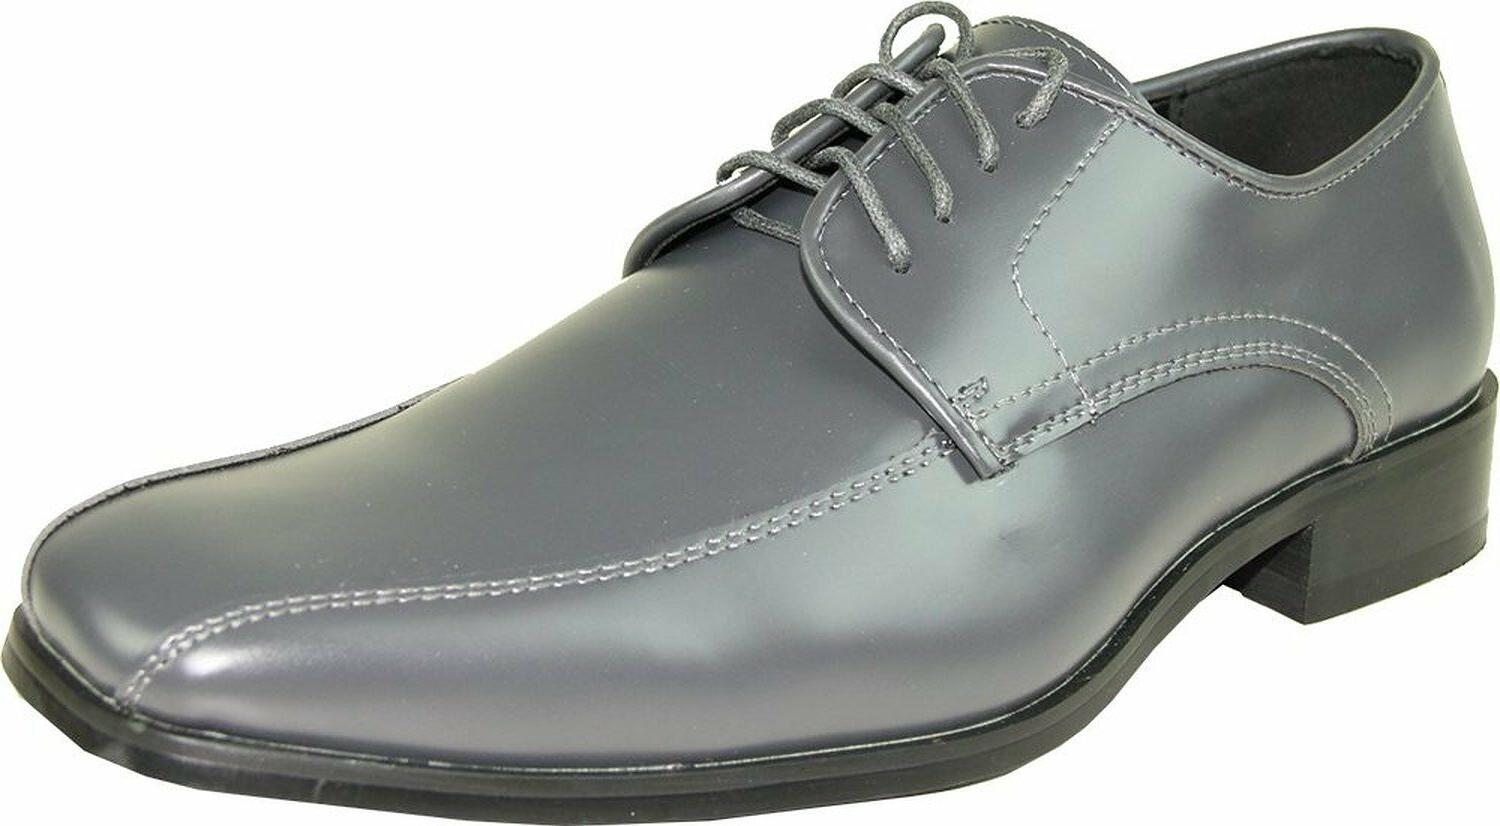 VANGELO/TUX-5 Wrinkle Free Mens Dress Shoes Bicycle Toe Iron